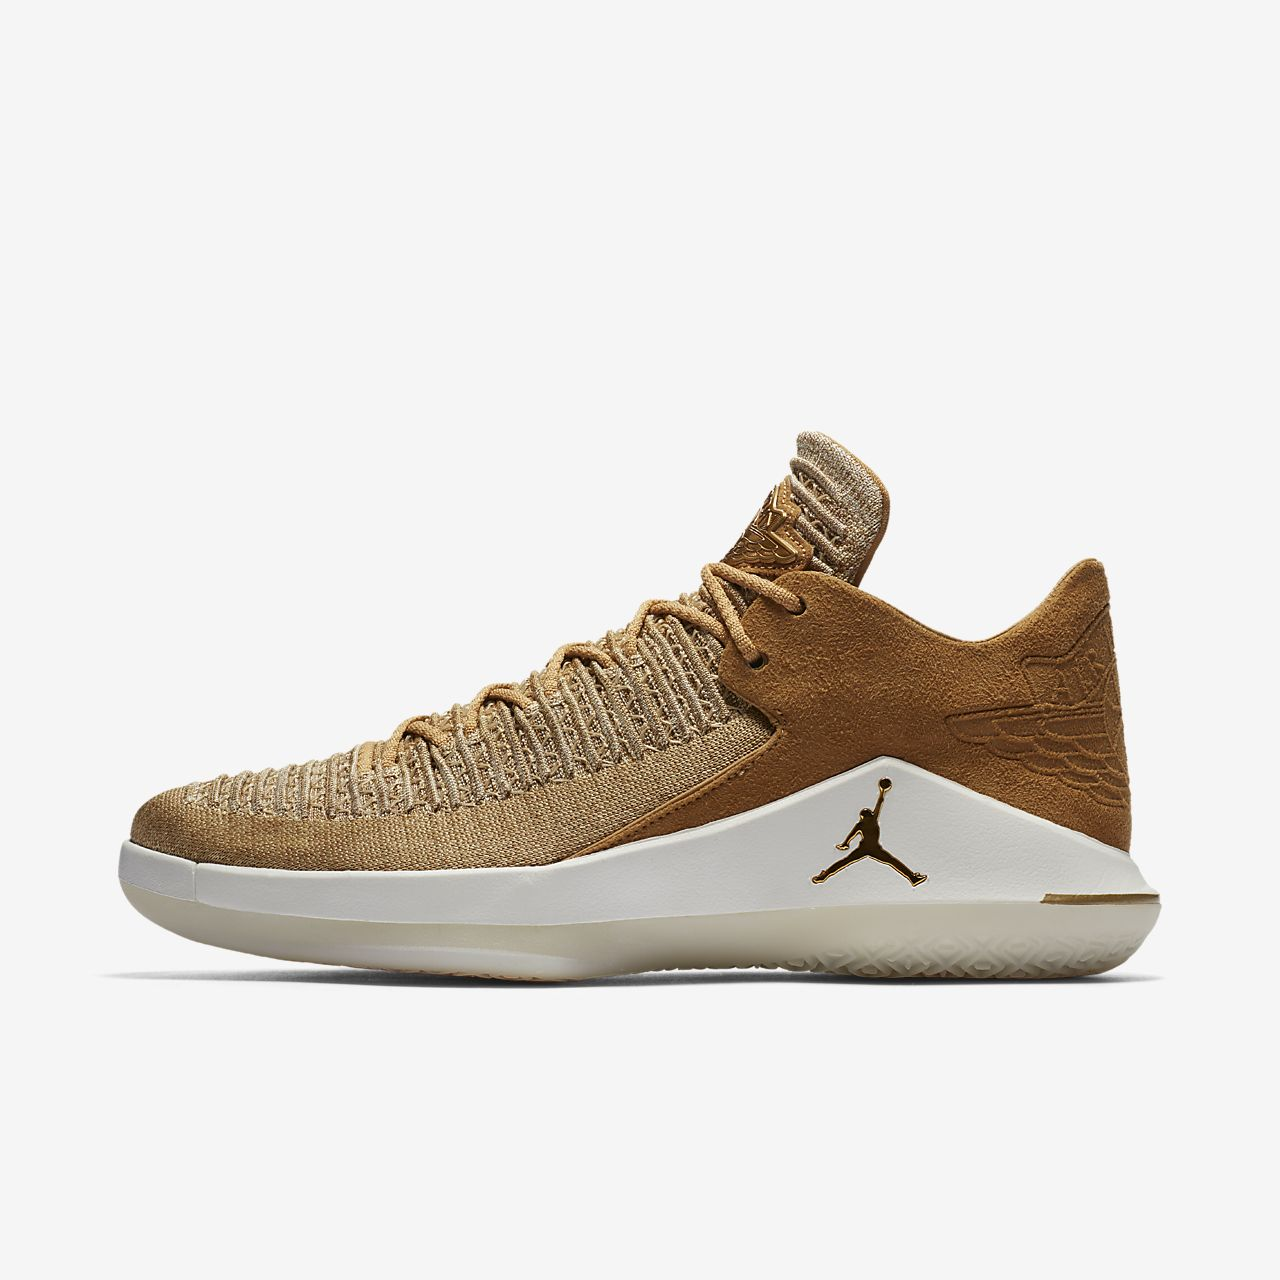 b79141d35d2b5 Air Jordan XXXII Low Men s Basketball Shoe. Nike.com VN